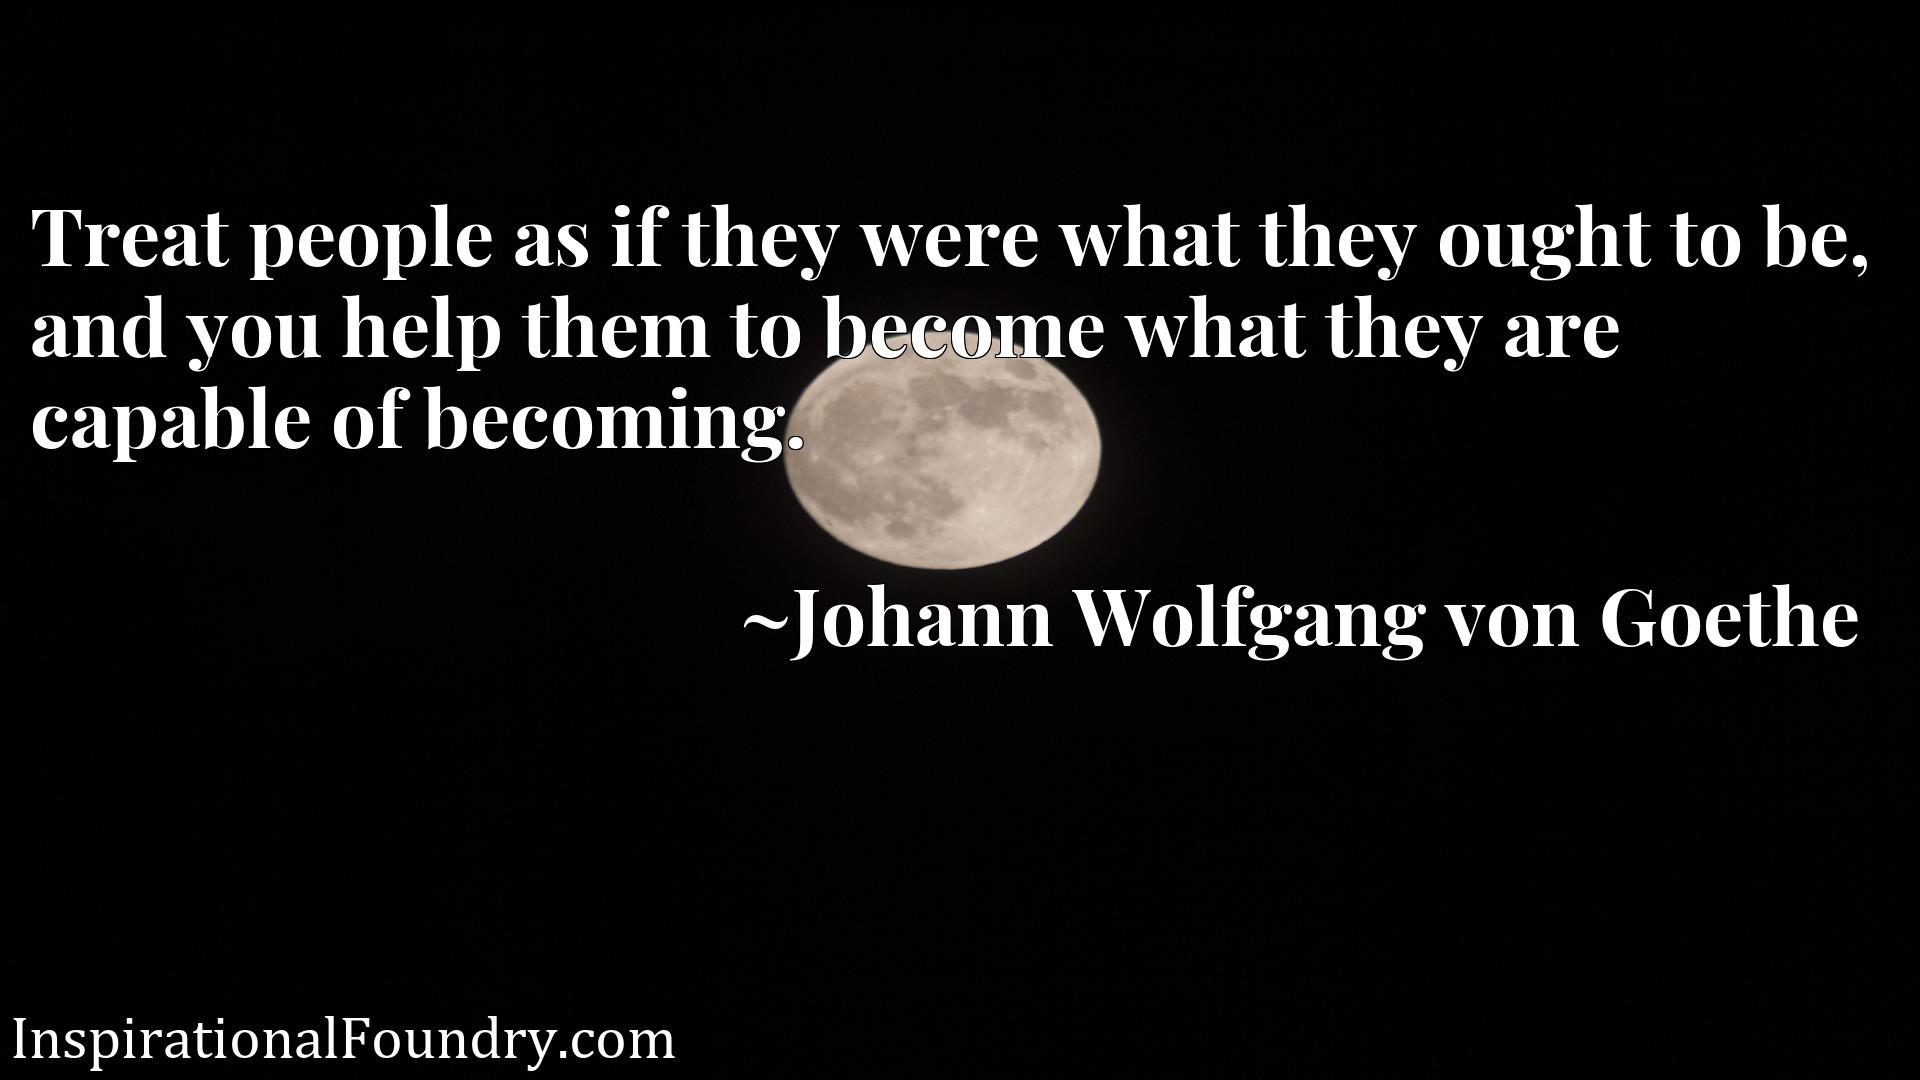 Treat people as if they were what they ought to be, and you help them to become what they are capable of becoming.